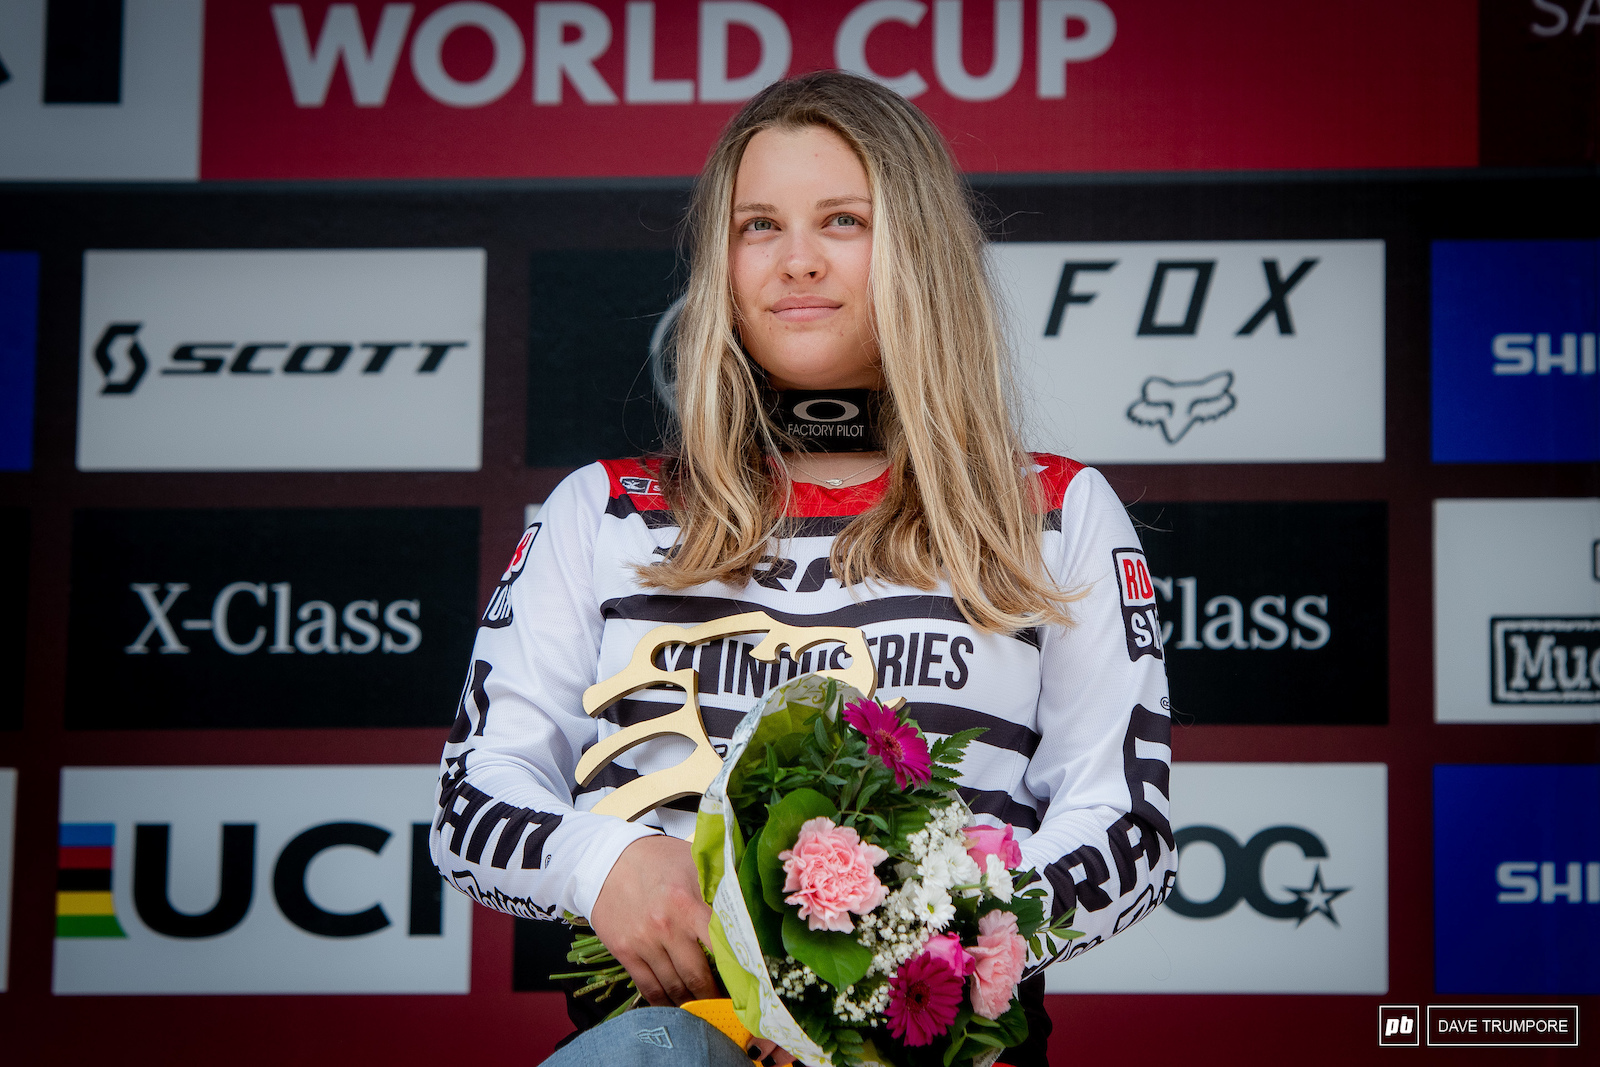 Remember this face as you will surely be seeing junior Vali Holl on the top of World Cup podiums for the next decade or so.